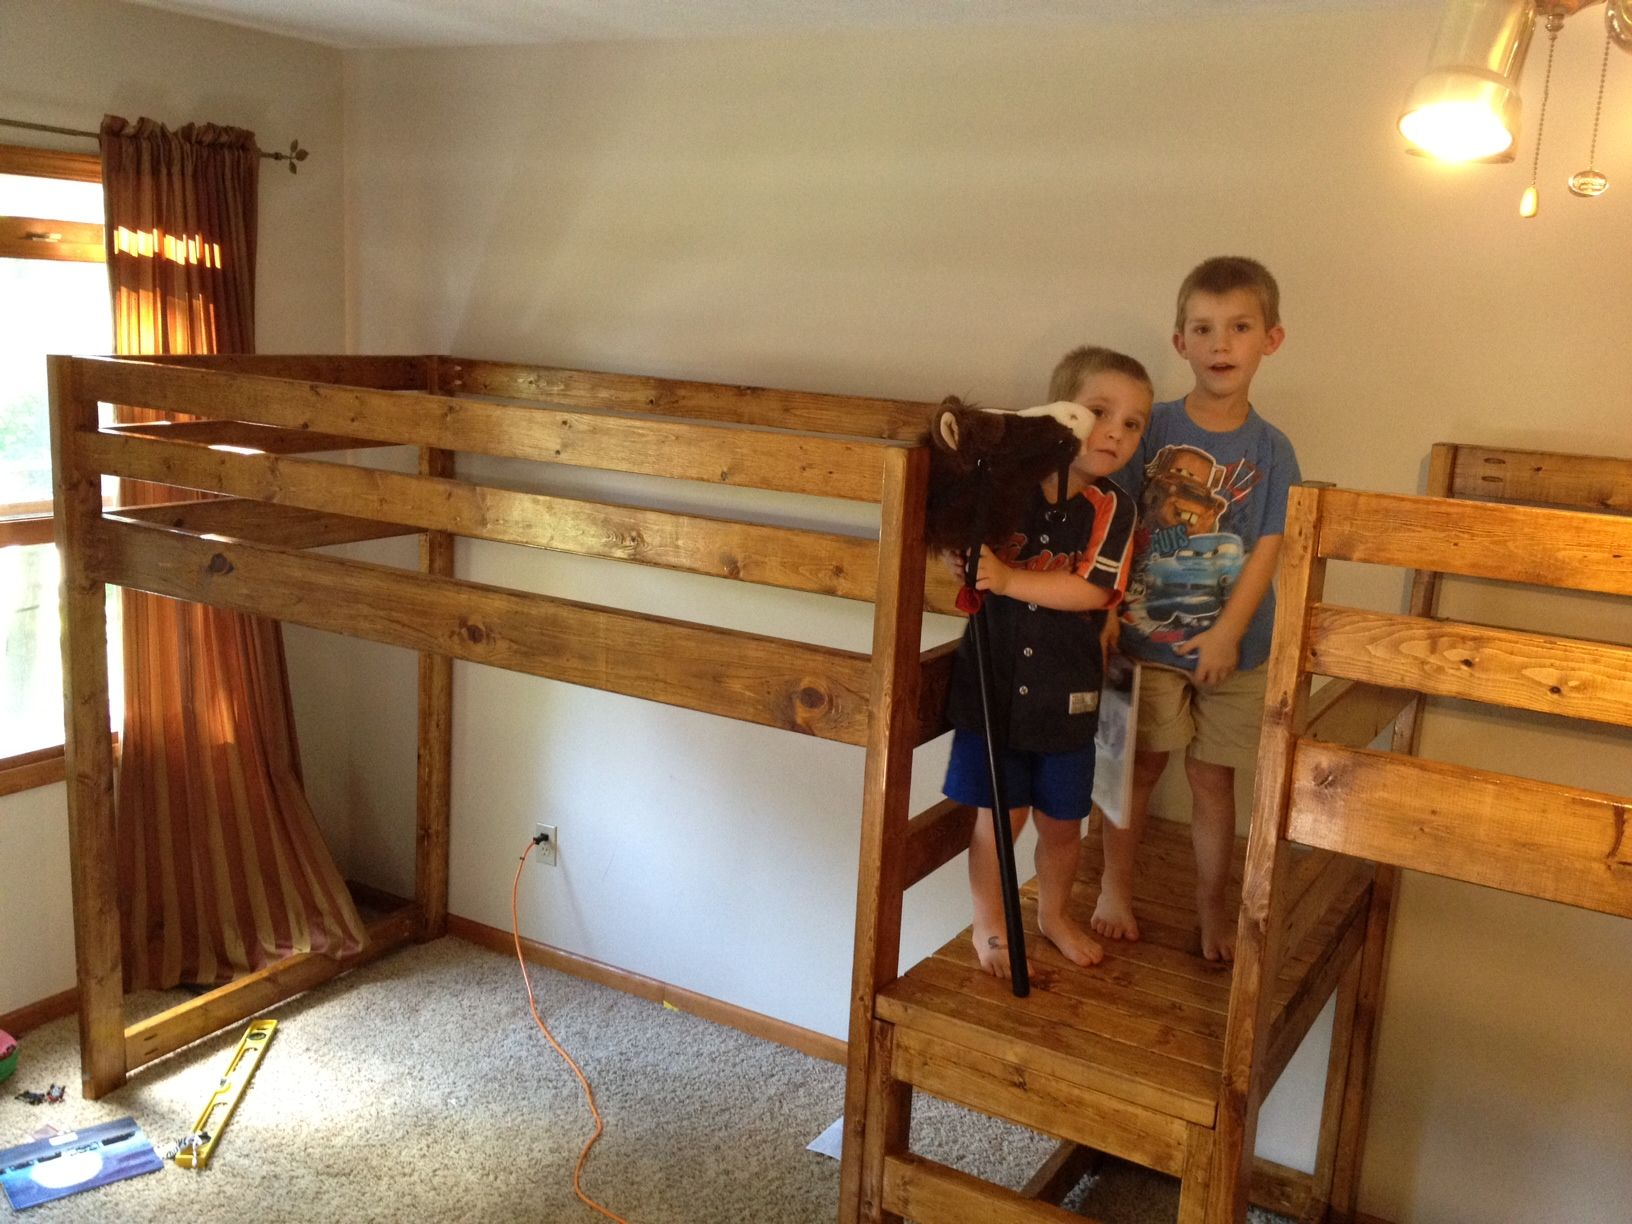 remarkable boys bedroom ideas loft bed | Ana White: Double Wide Camp Loft Bed! | Kid beds, Bedroom ...